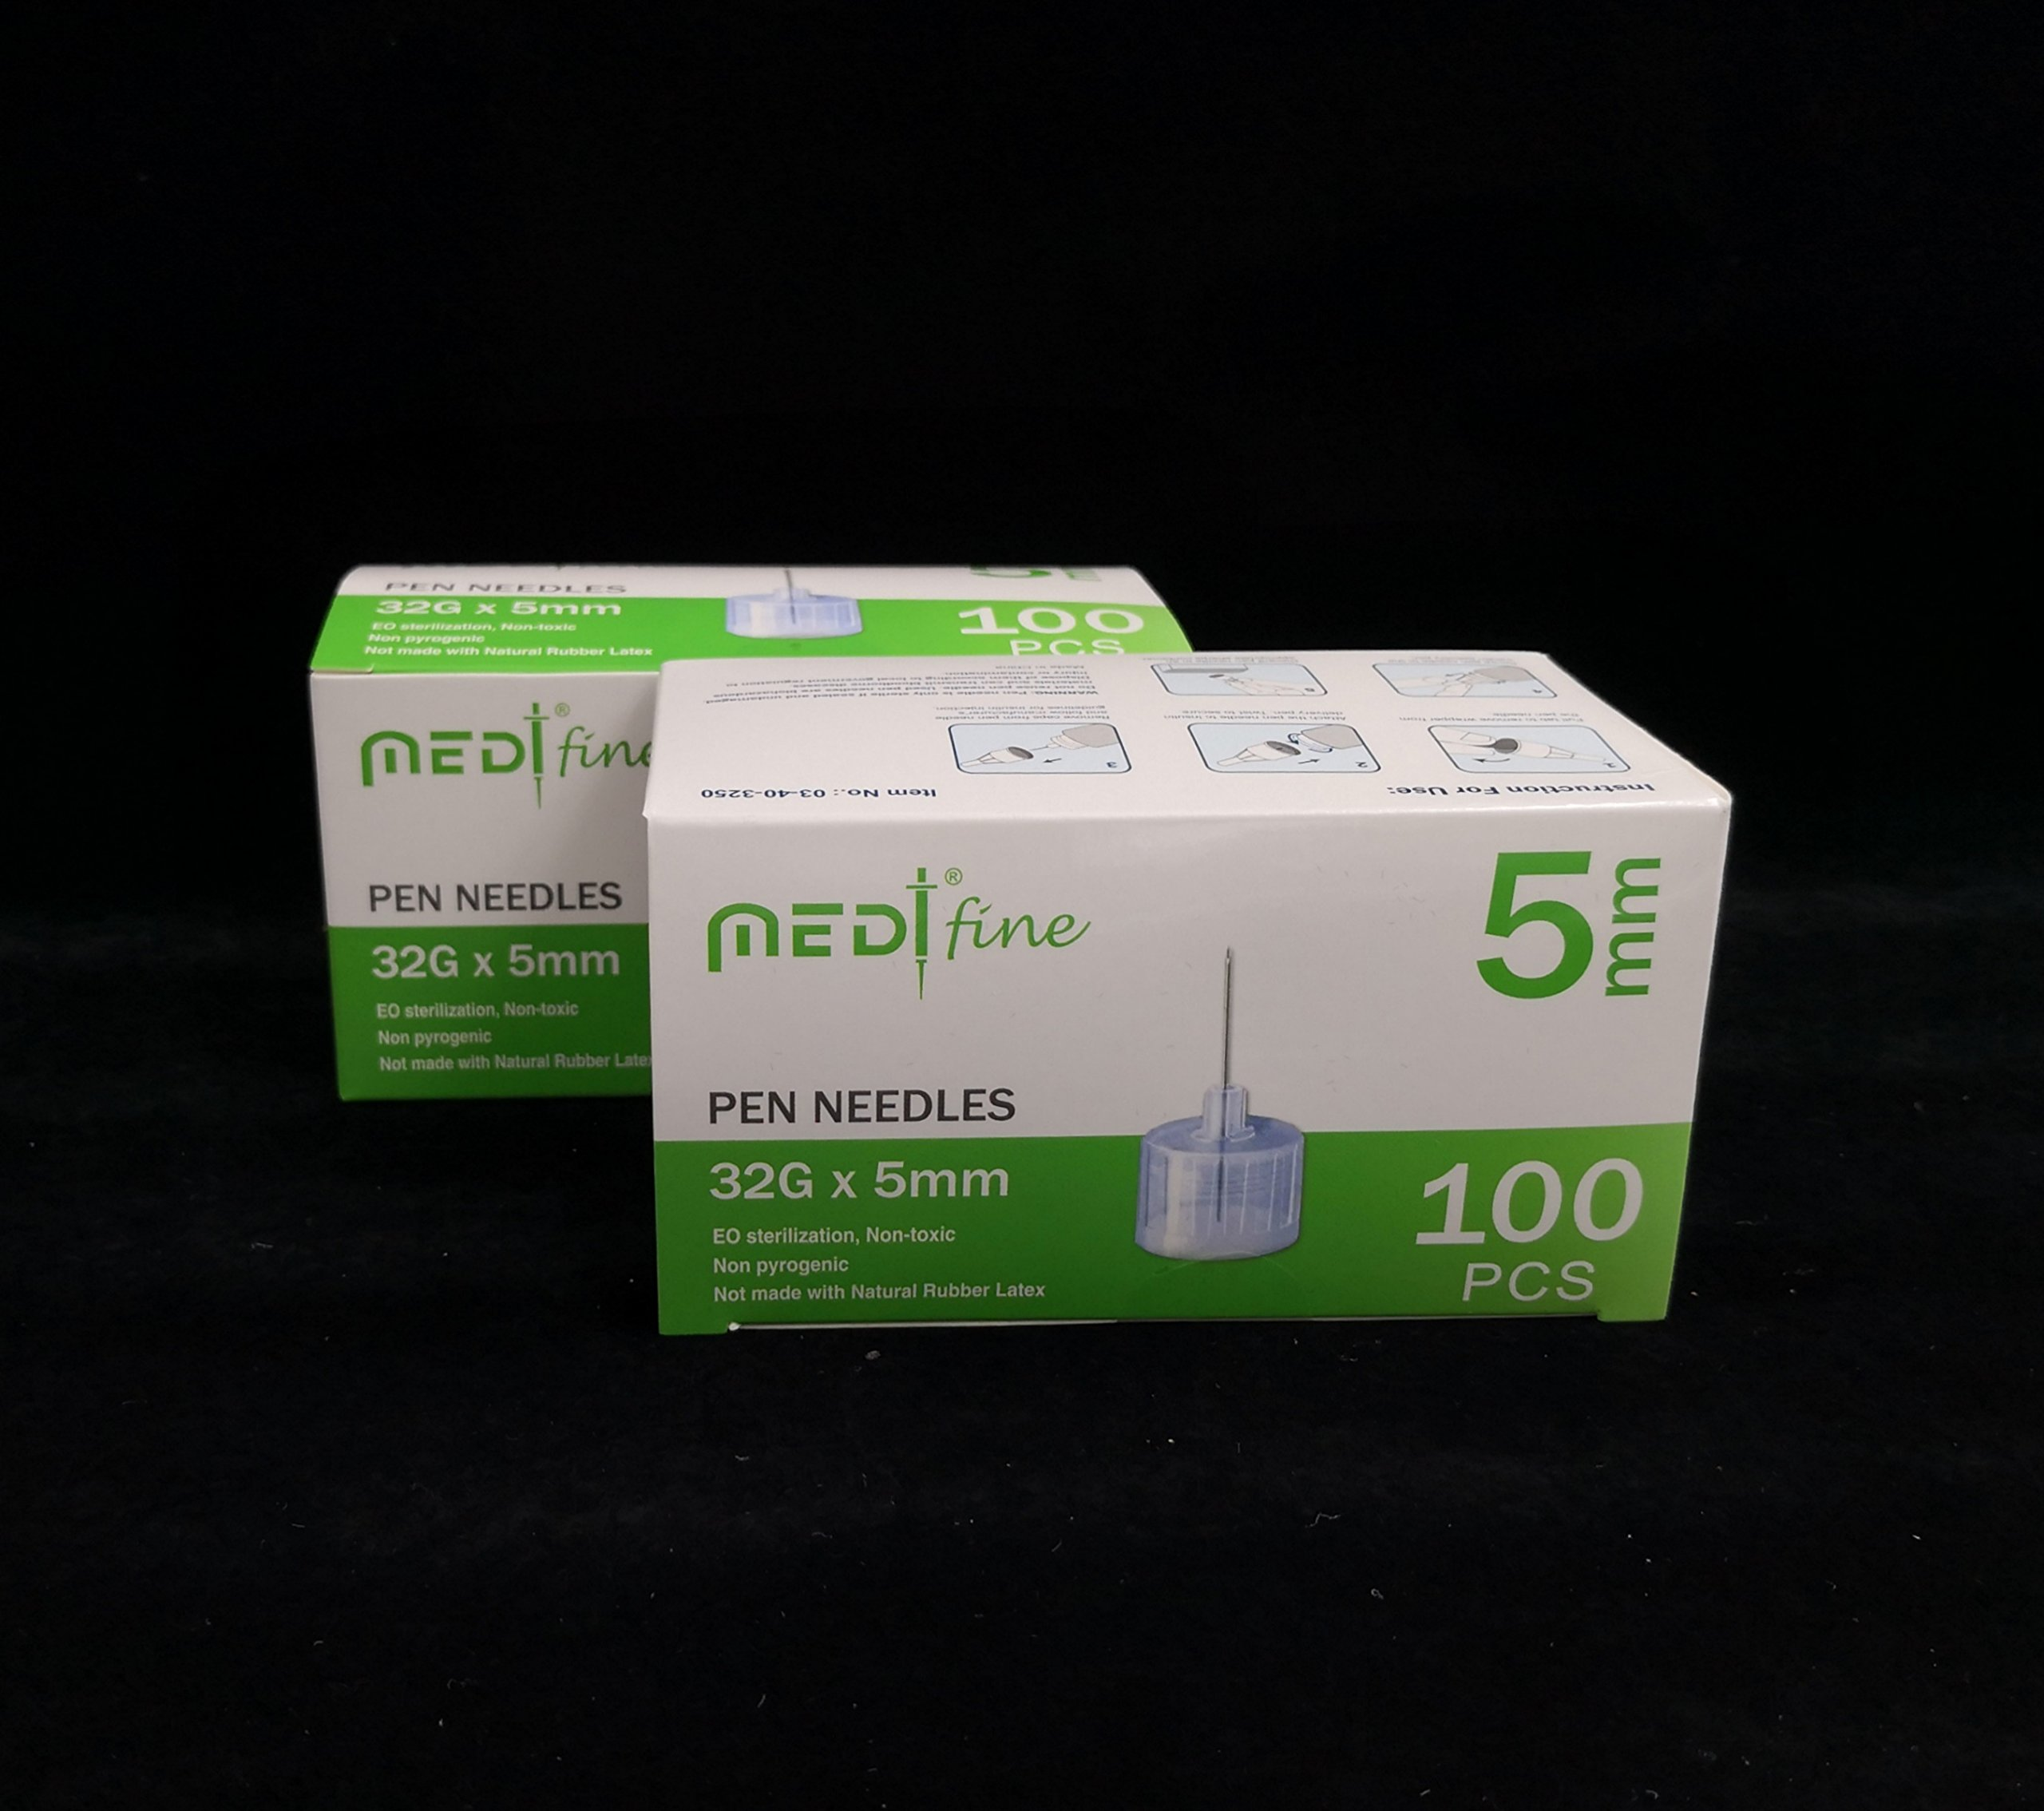 Medtfine Insulin Pen Needles 32g 5mm 200 Pieces 2x100